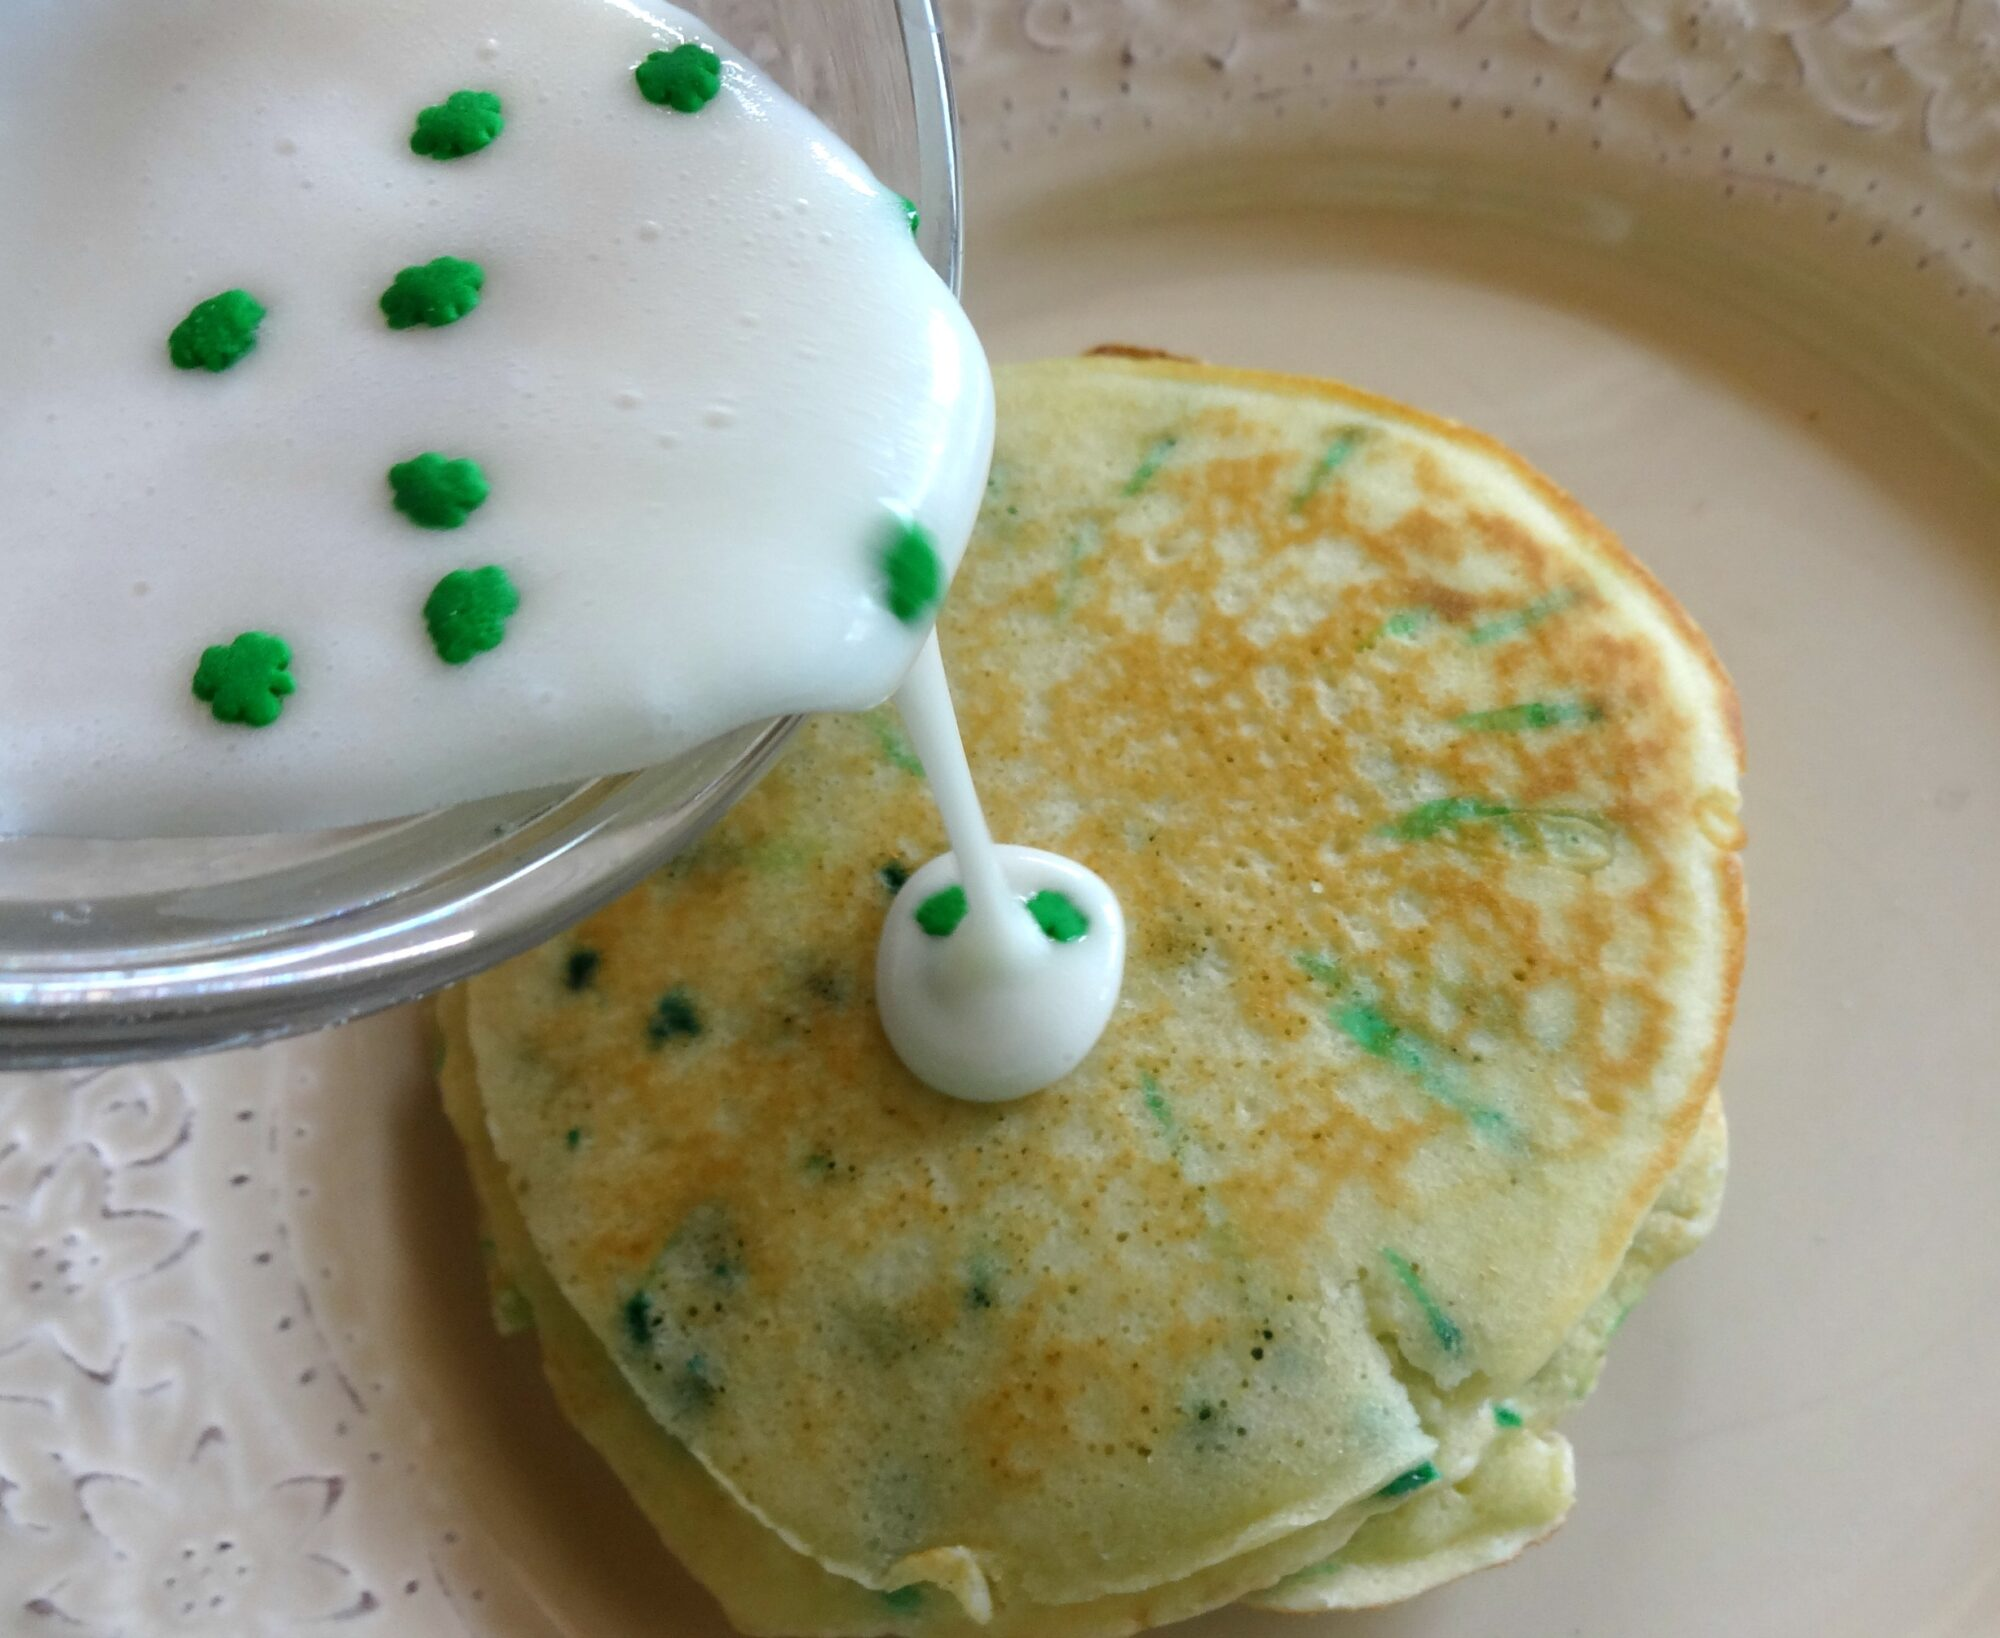 Birthday Cake Pancakes with Homemade Cake Batter Serendipity by